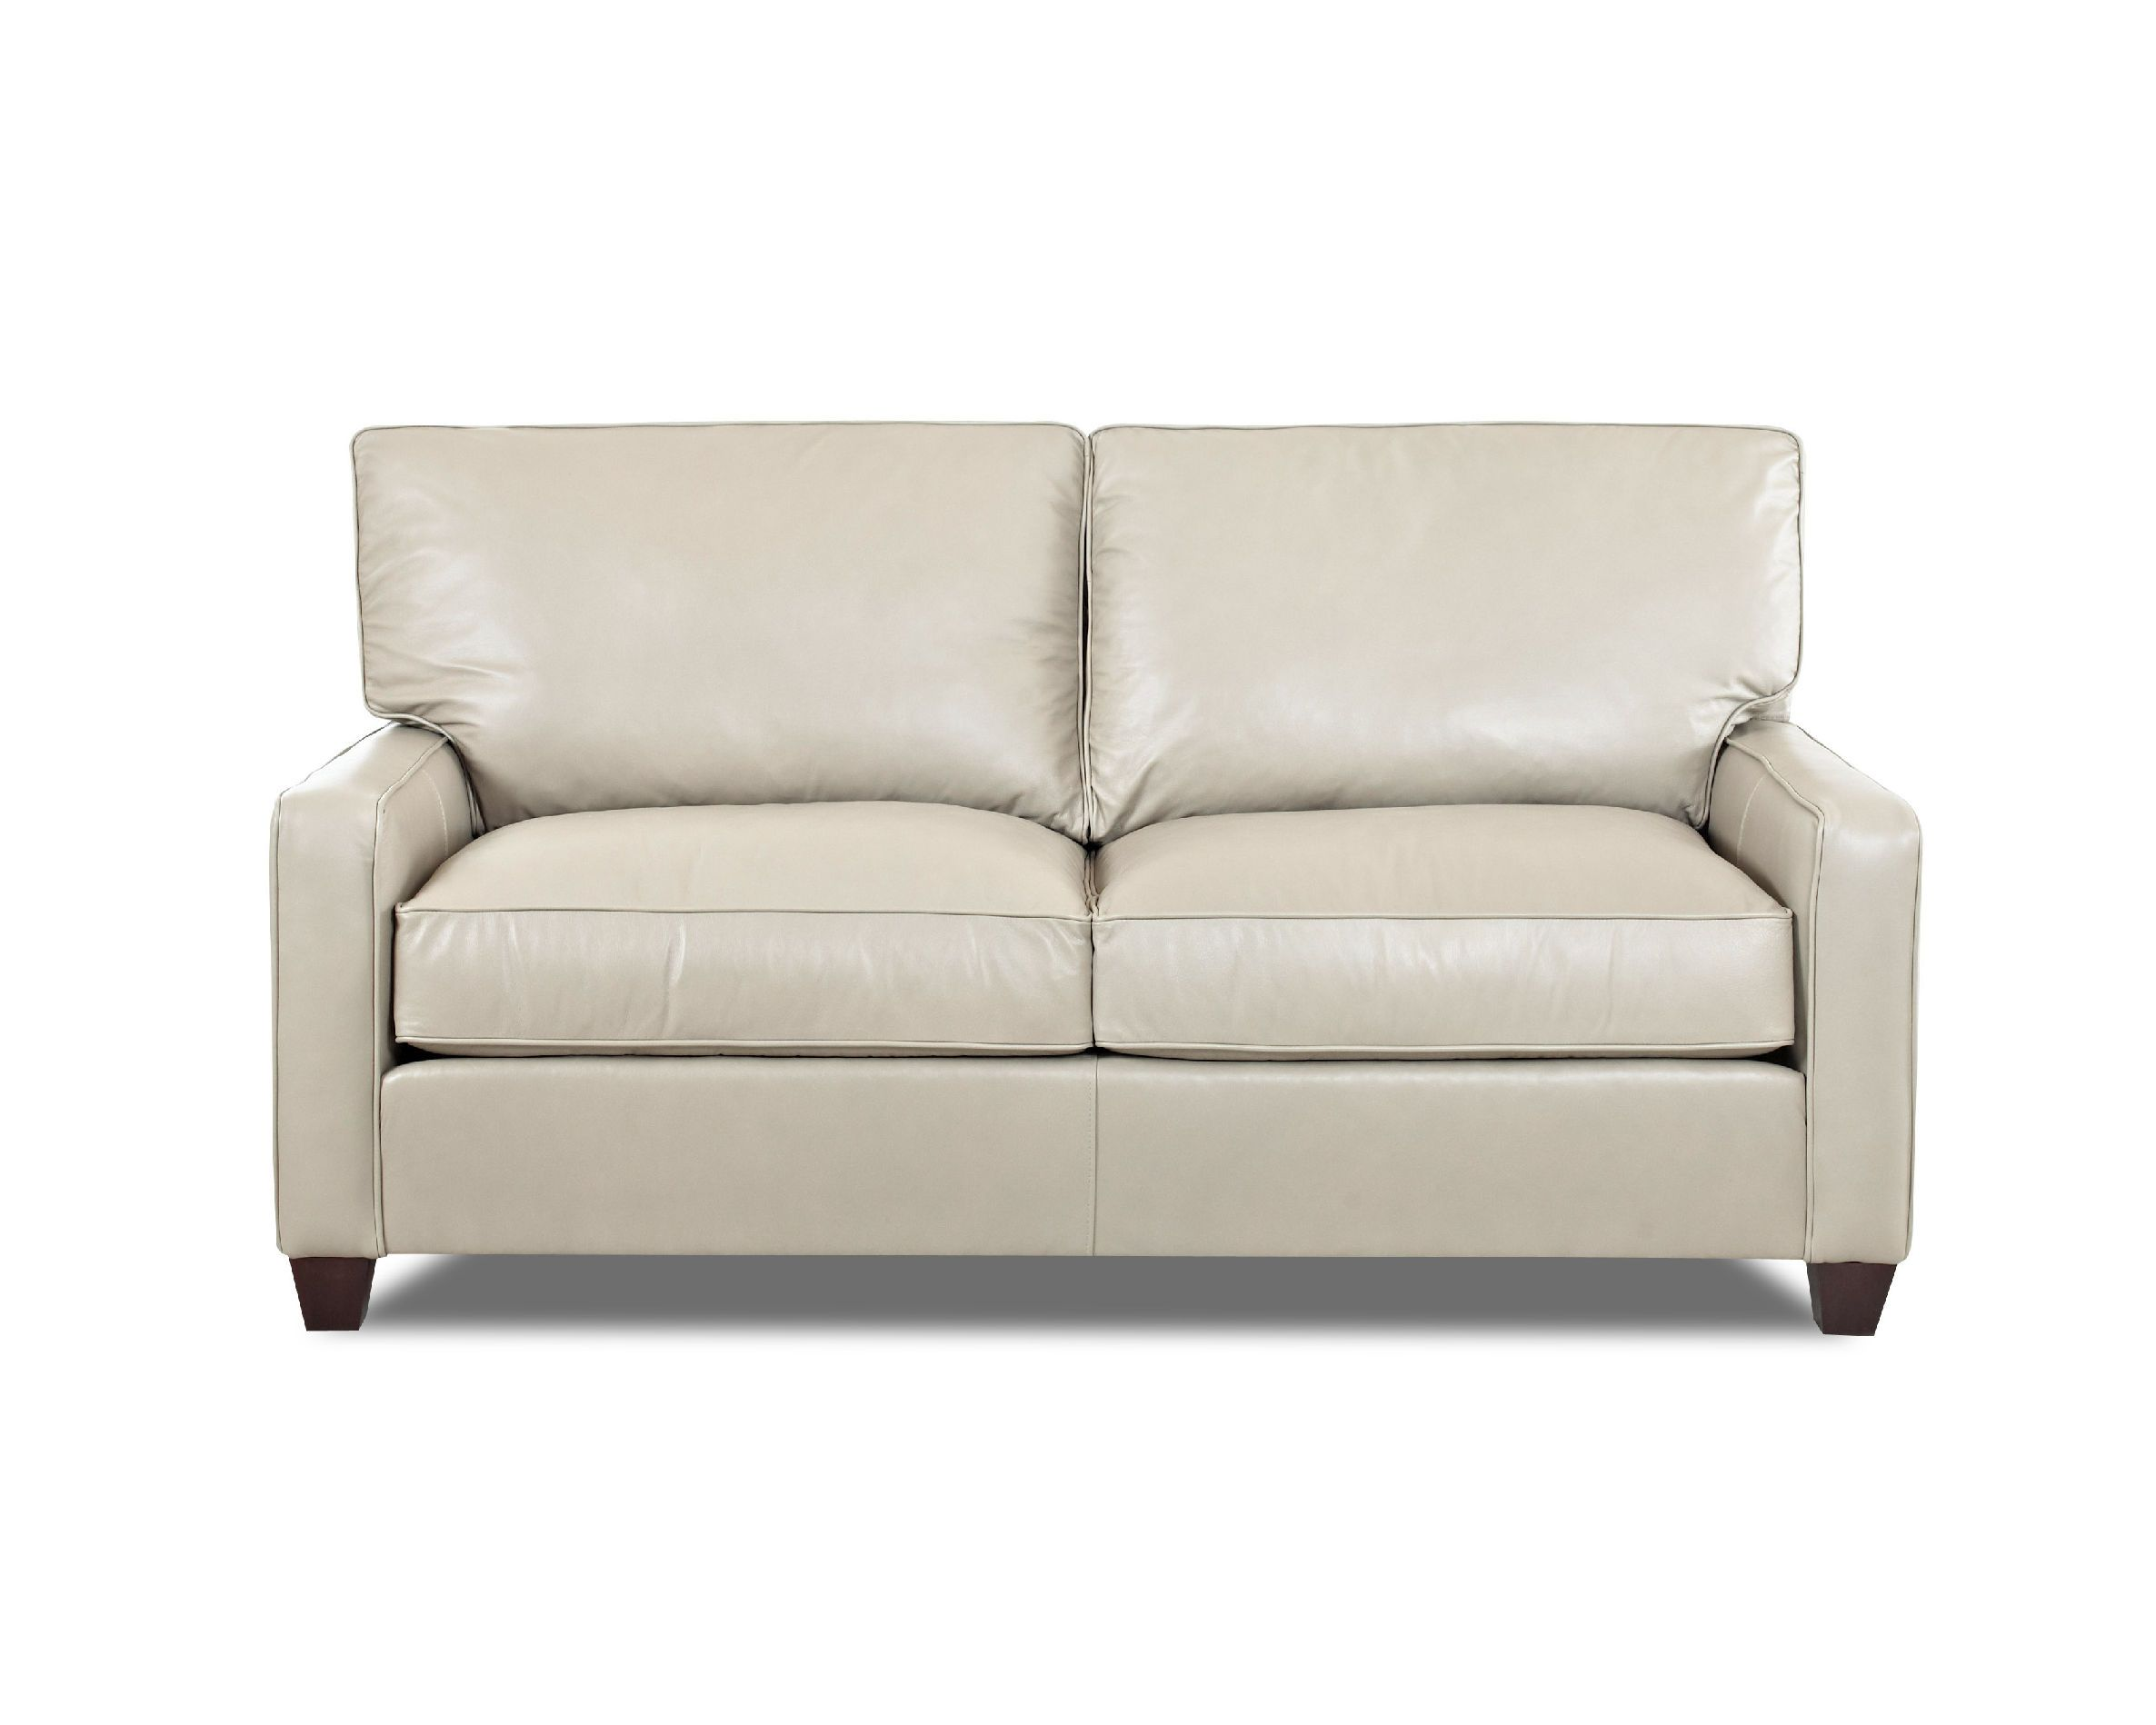 Comfort Design Living Room Ausie Loveseat CL4035 LS   Bacons Furniture    Sarasota And Port Charlotte